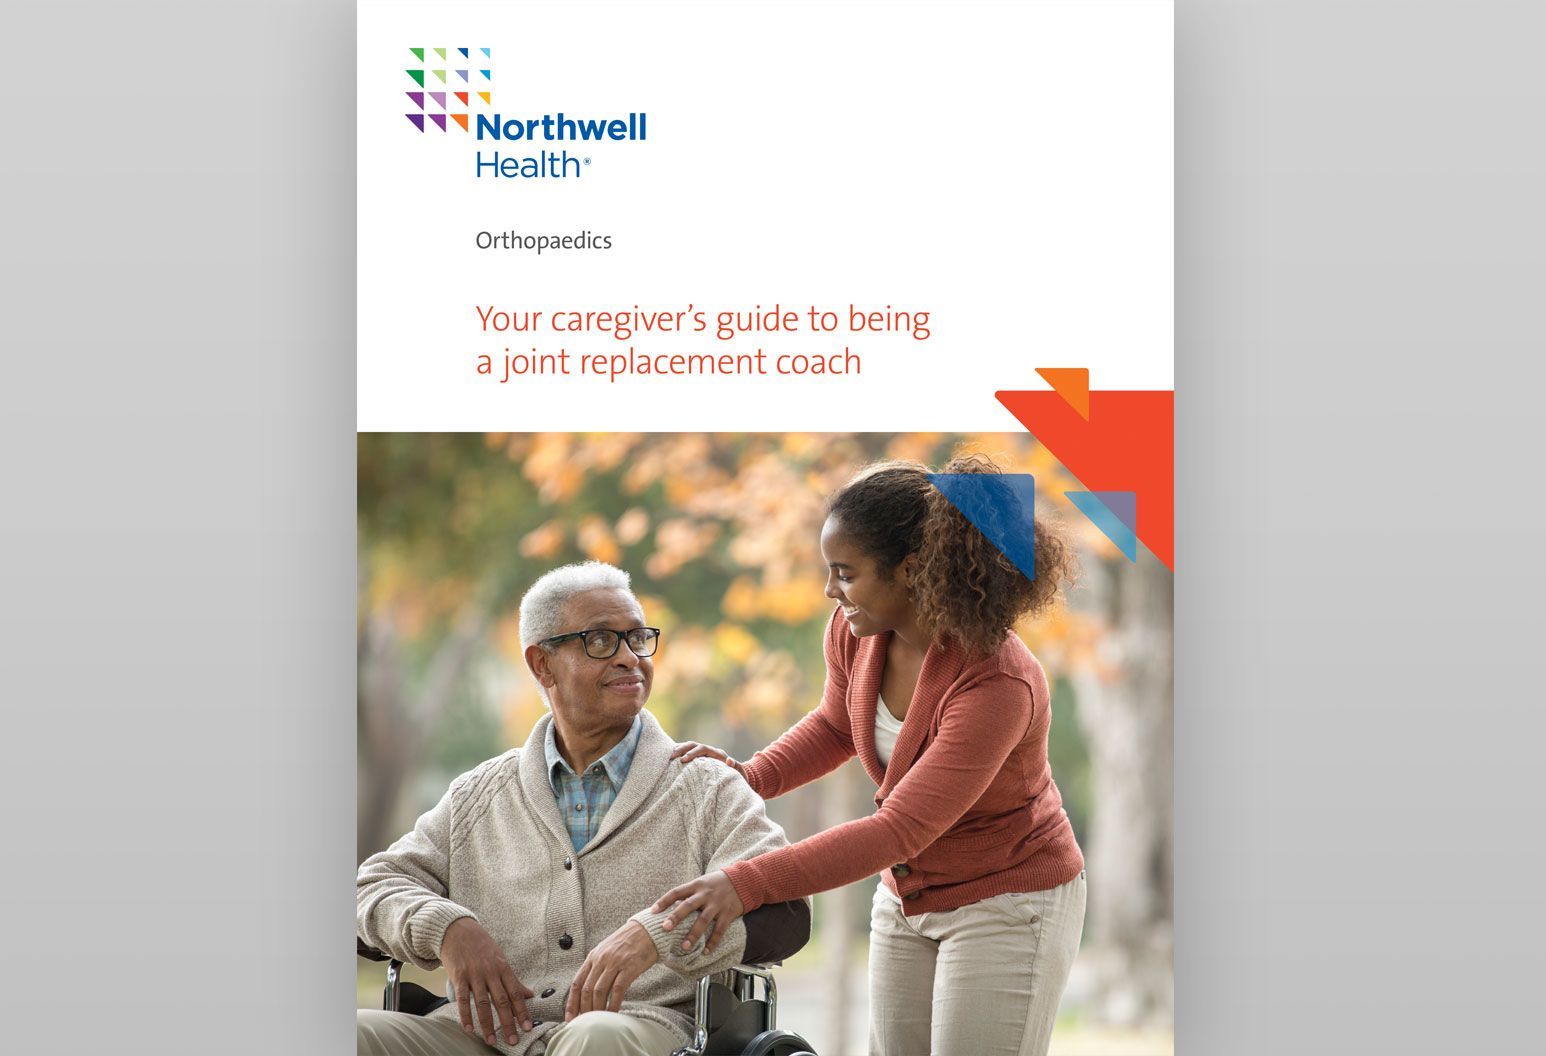 On the cover of a booklet about tips for caregivers, there is an elderly man sitting in a wheel chair wearing glasses and a tan sweater. A young woman is standing next to him and holding his arm. They're looking at each other, smiling.